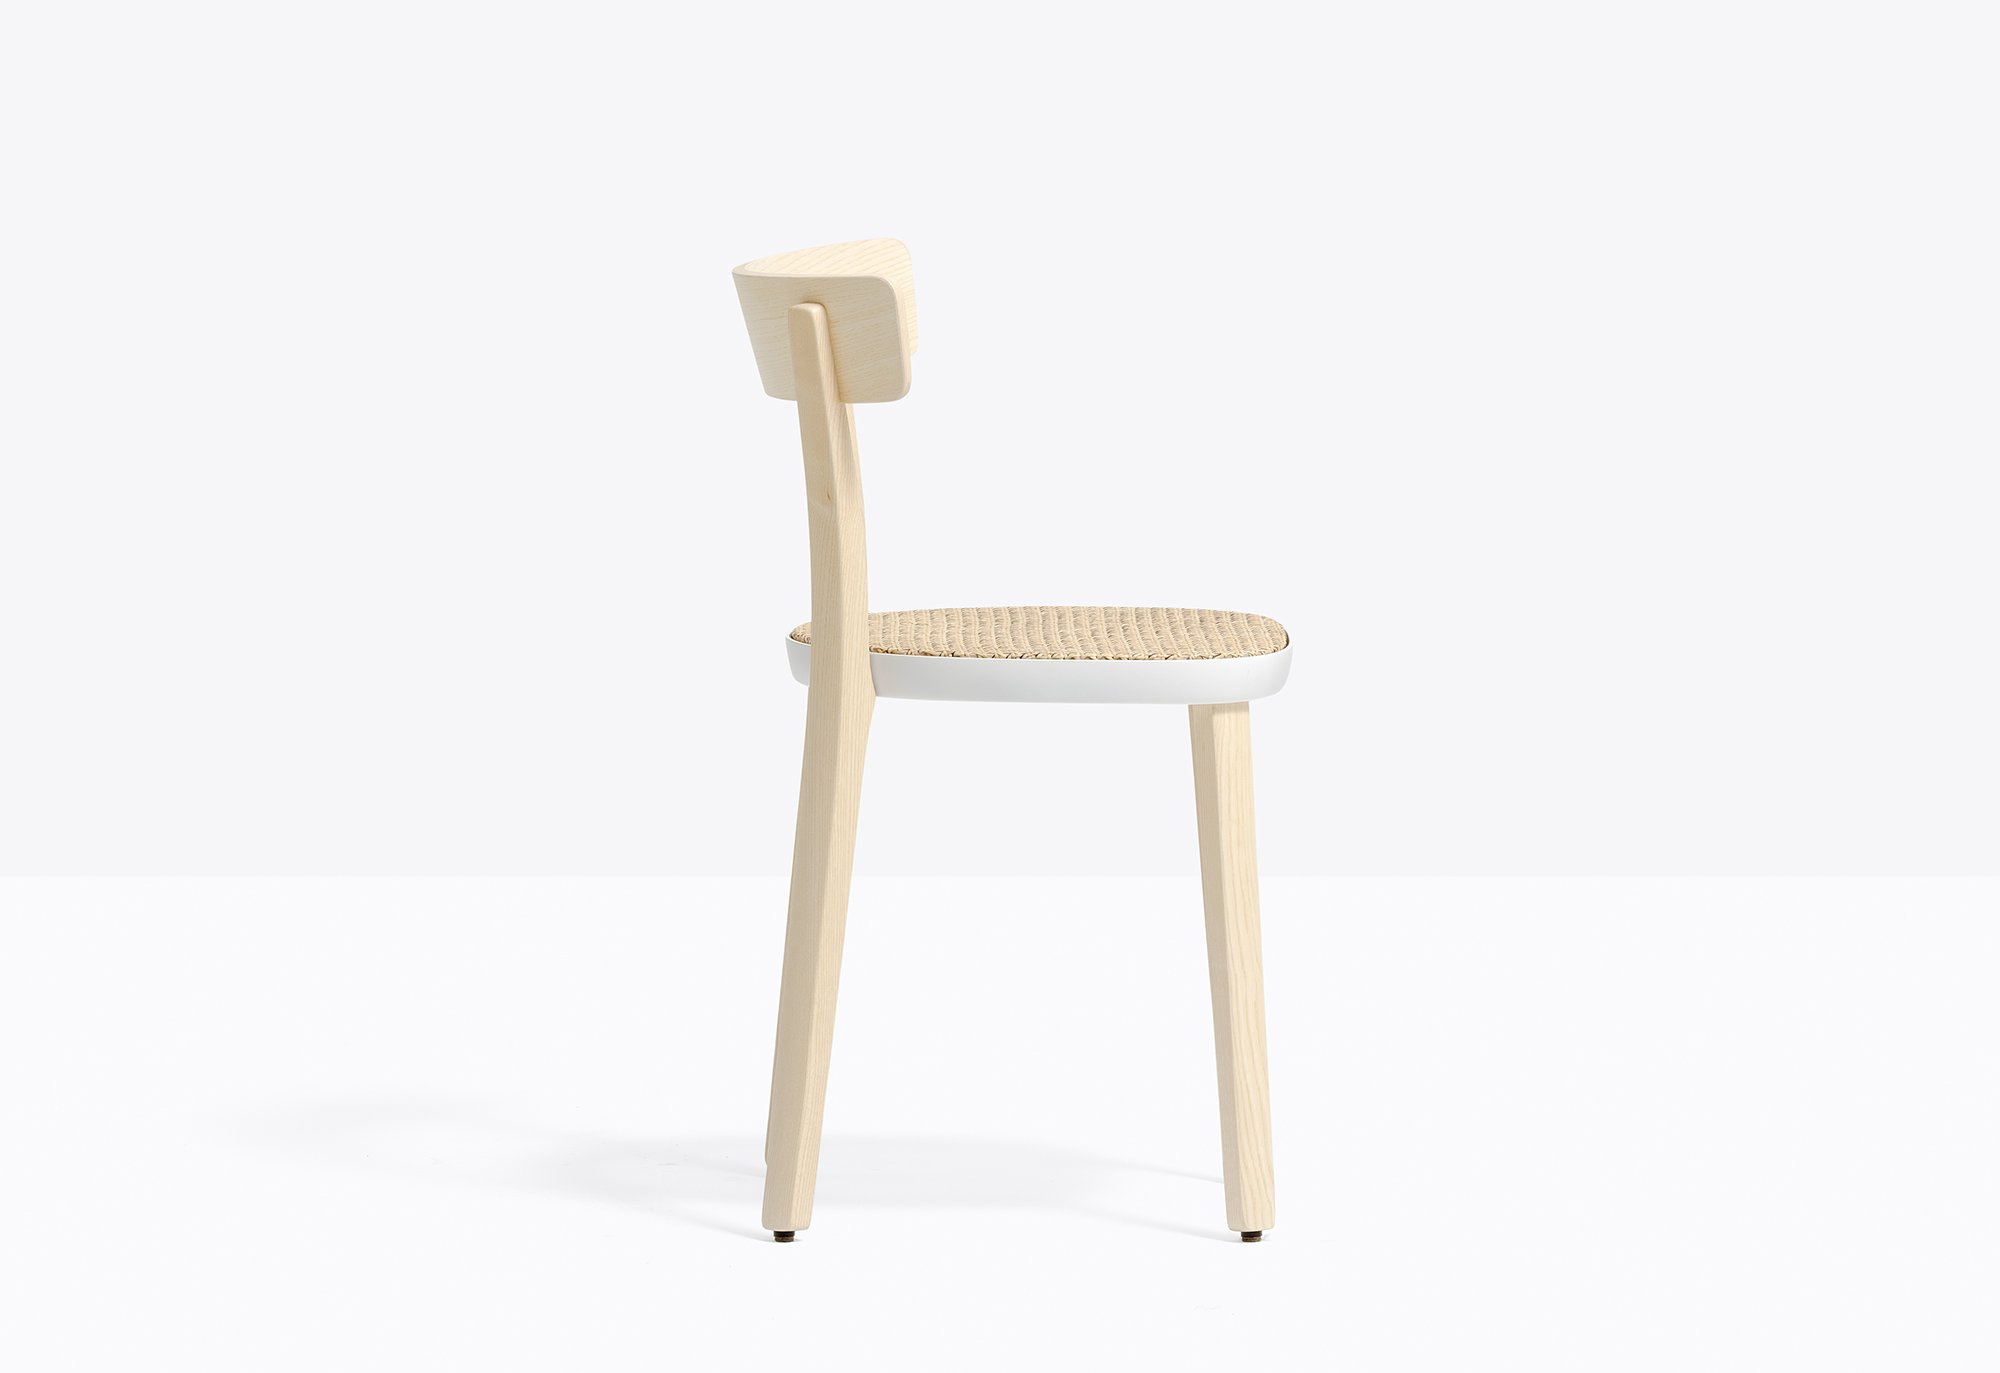 Folk Chair from Pedrali, designed by CMP Design